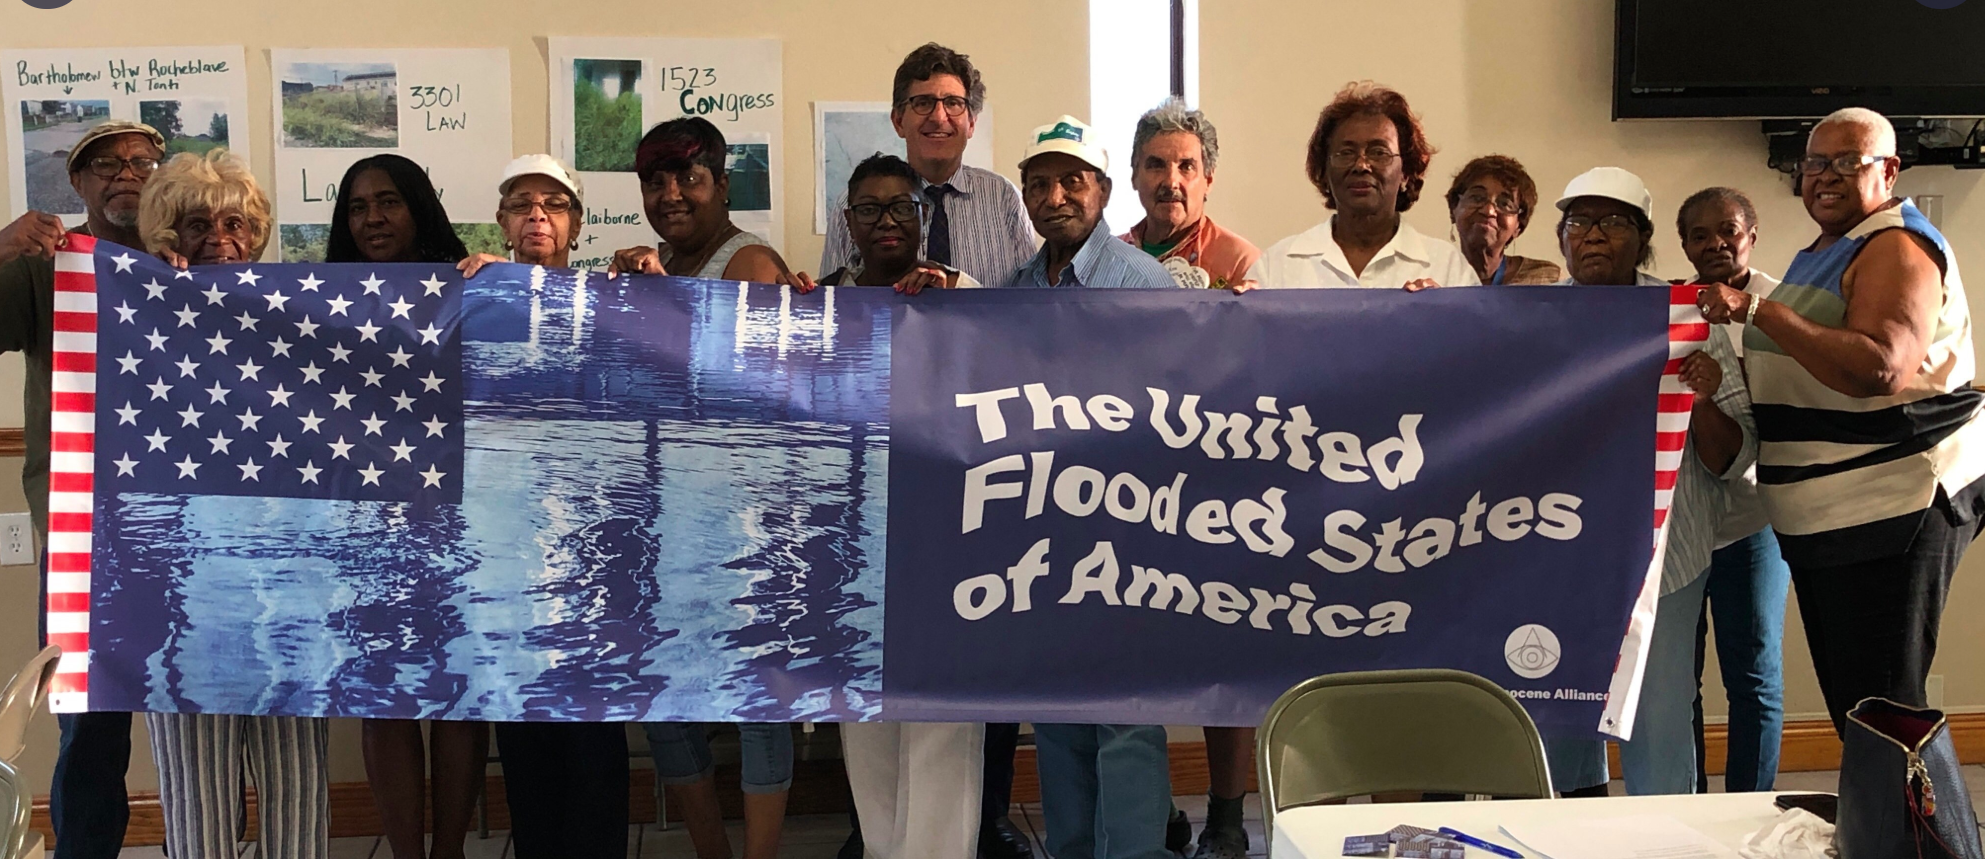 For members The United Flooded States of America, chronic flooding is a political issue, not just a climate issue.